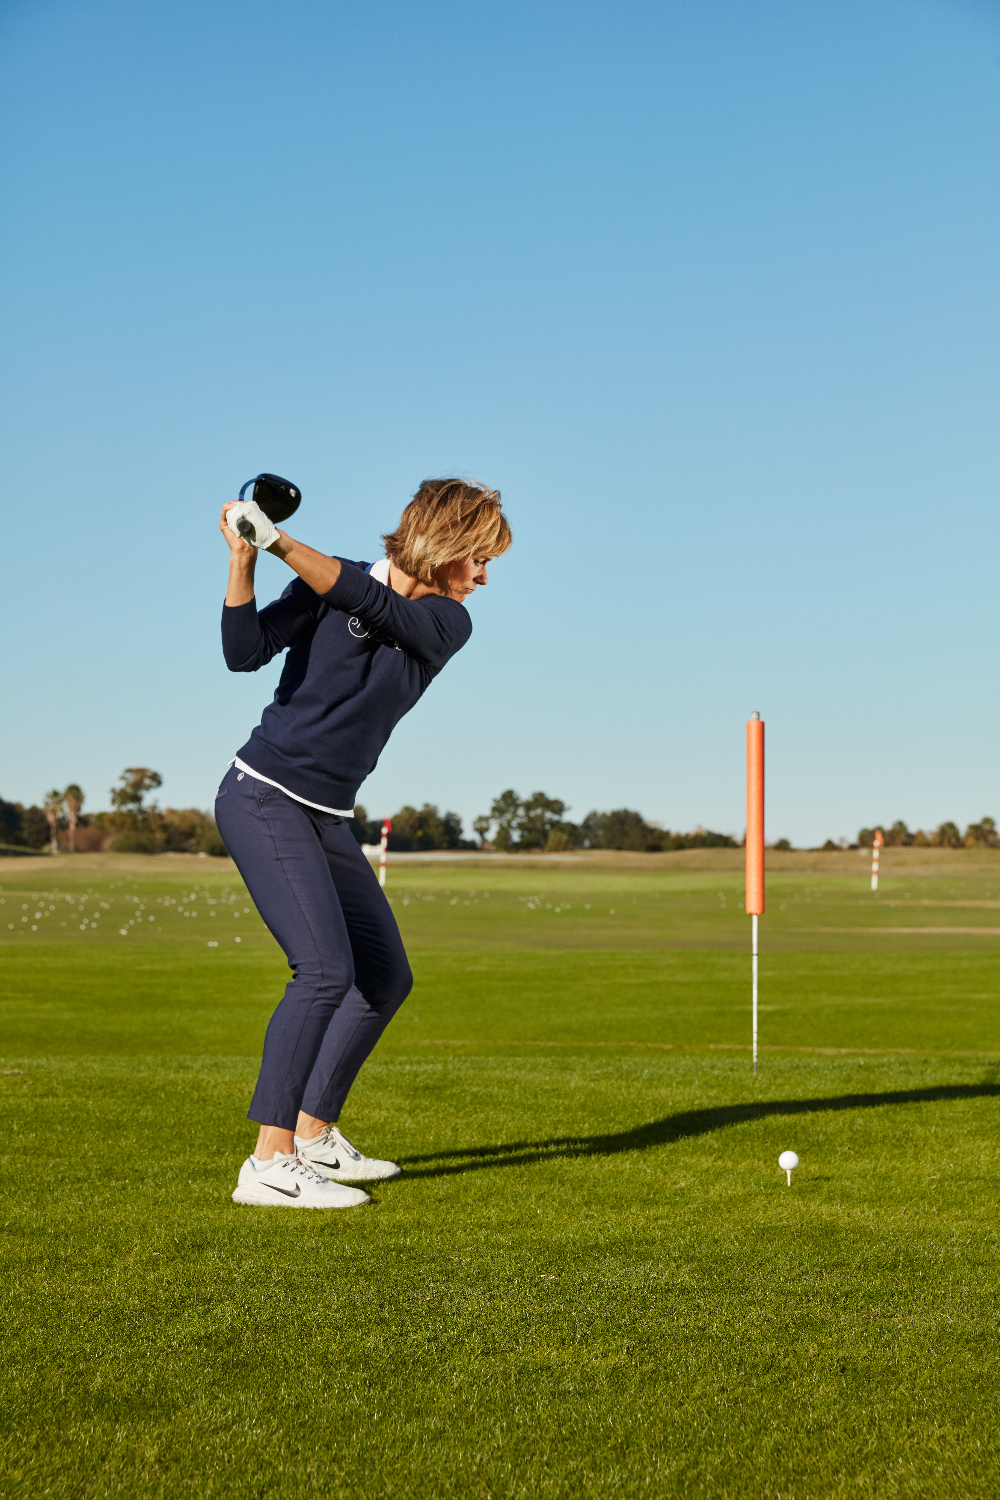 pulmón es suficiente mimar  Mastering this drill will give you expert control over ball flight #golf in  2020 | Soccer girl problems, Soccer tips, Soccer